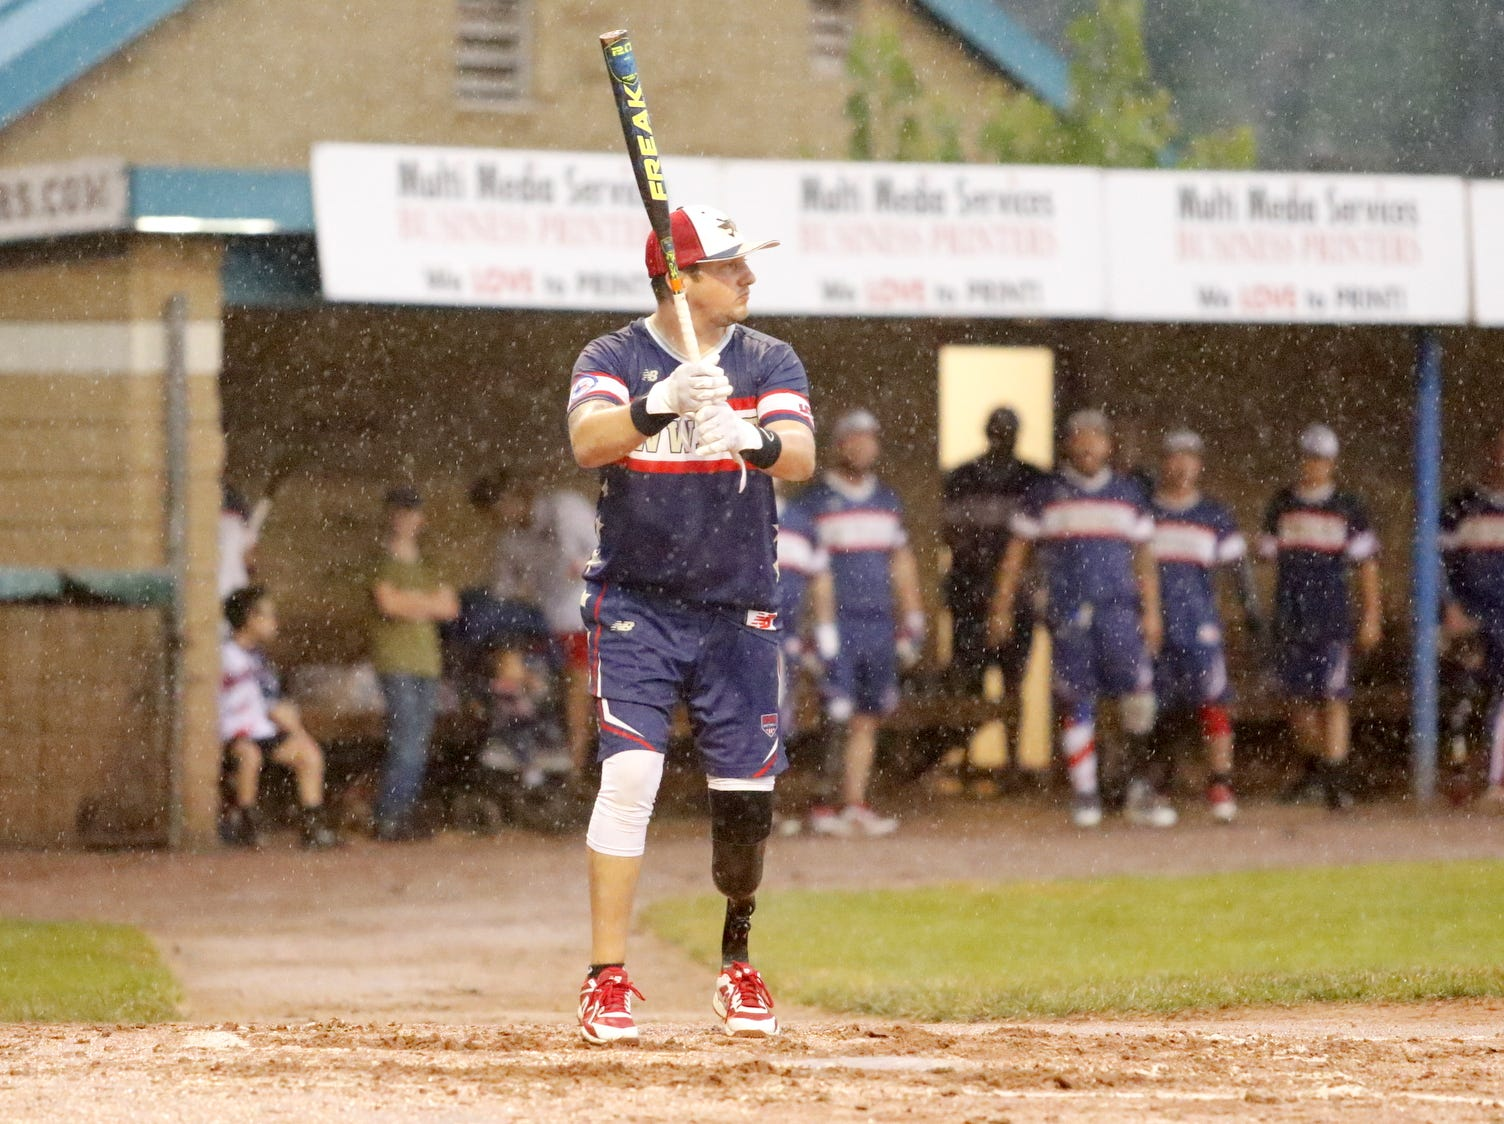 Brent Nadjadi of Bath steps to the plate for the Wounded Warrior Amputee Softball Team against the Elmira Pioneers on July 21, 2018. WWAST was an 11-5 winner in the seven-inning softball game.